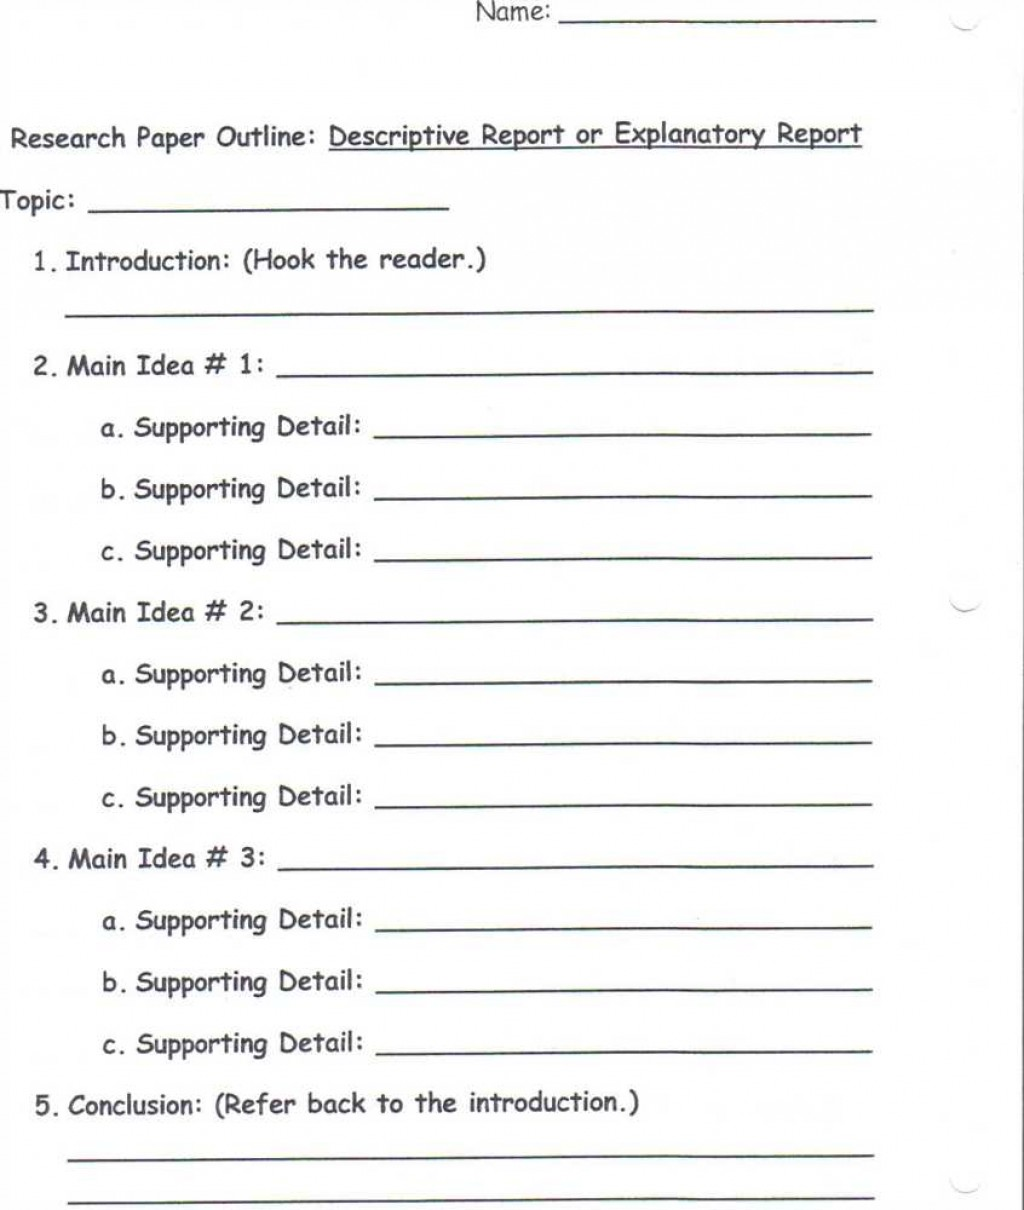 003 Observation Essays Descriptive Essay Outline For Ethnogr Ethnographic Outstanding Examples Template Pdf About A Person Large